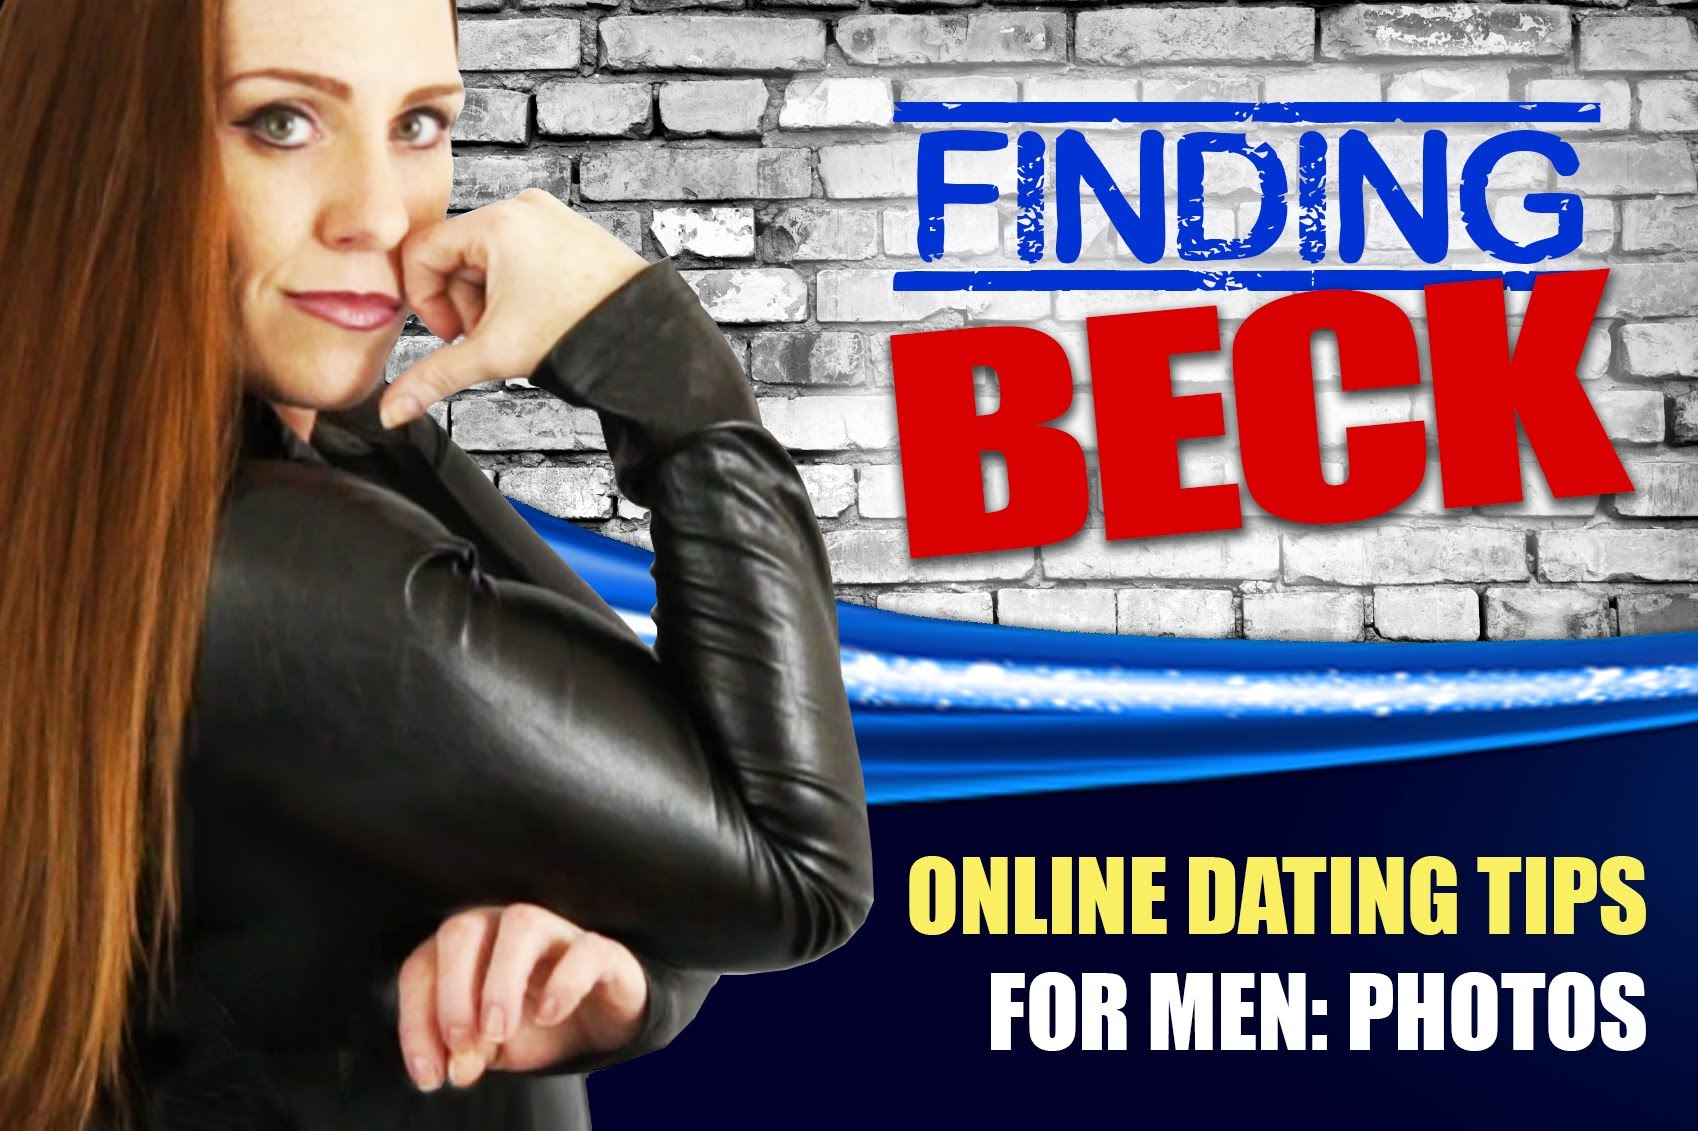 Online dating tips for guys in Melbourne